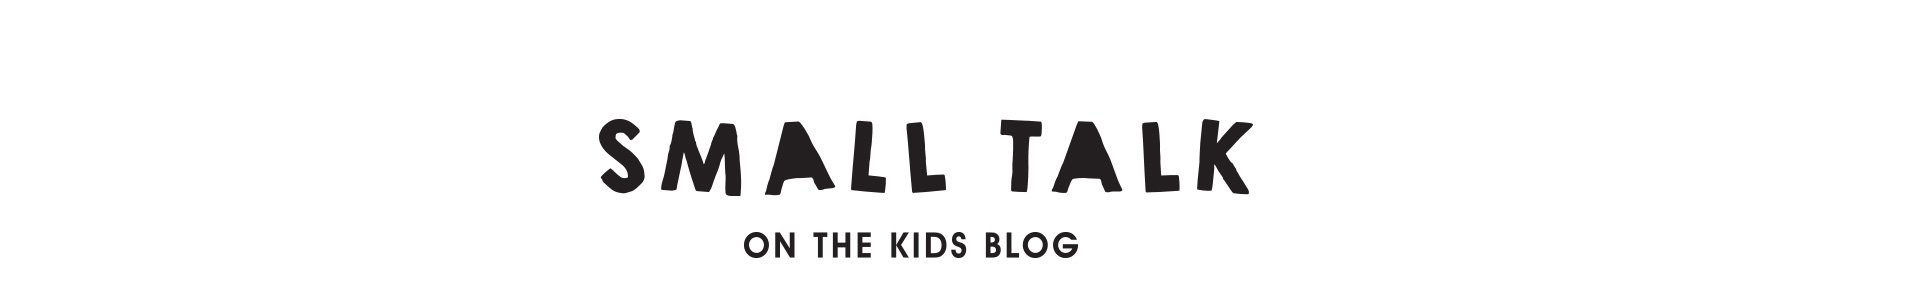 01-KIDS-SMALLTALK-HEADER-SECONDARY-V1.jpg